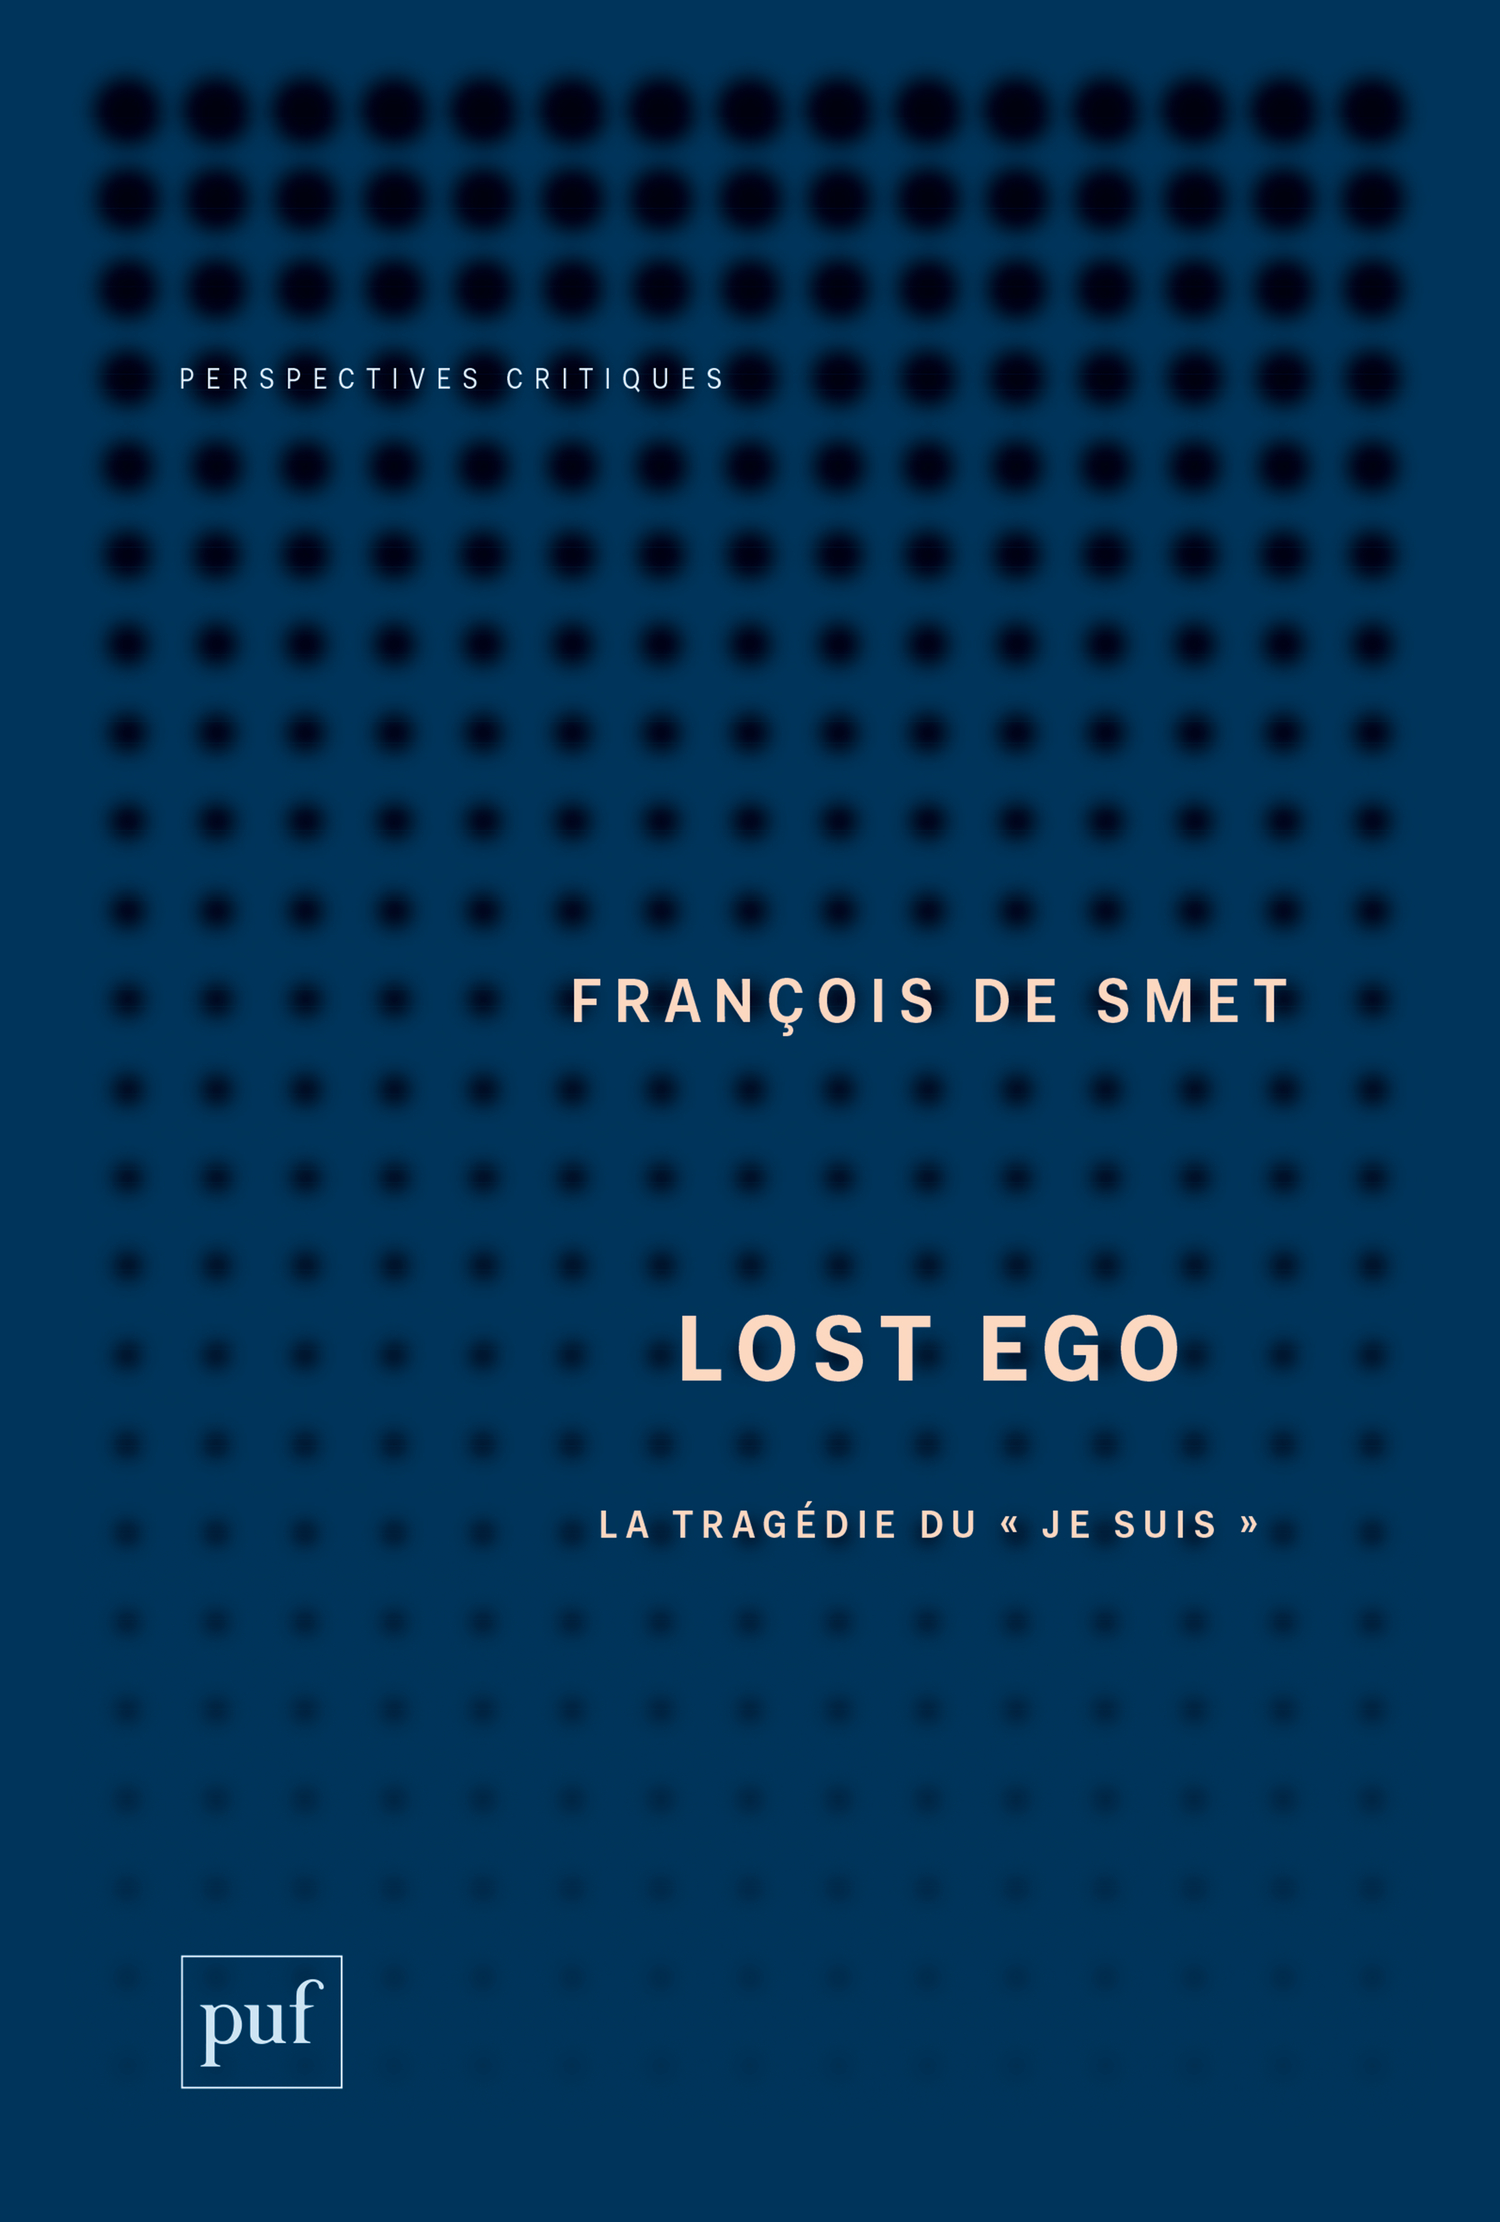 Lost Ego De François De Smet - Presses Universitaires de France